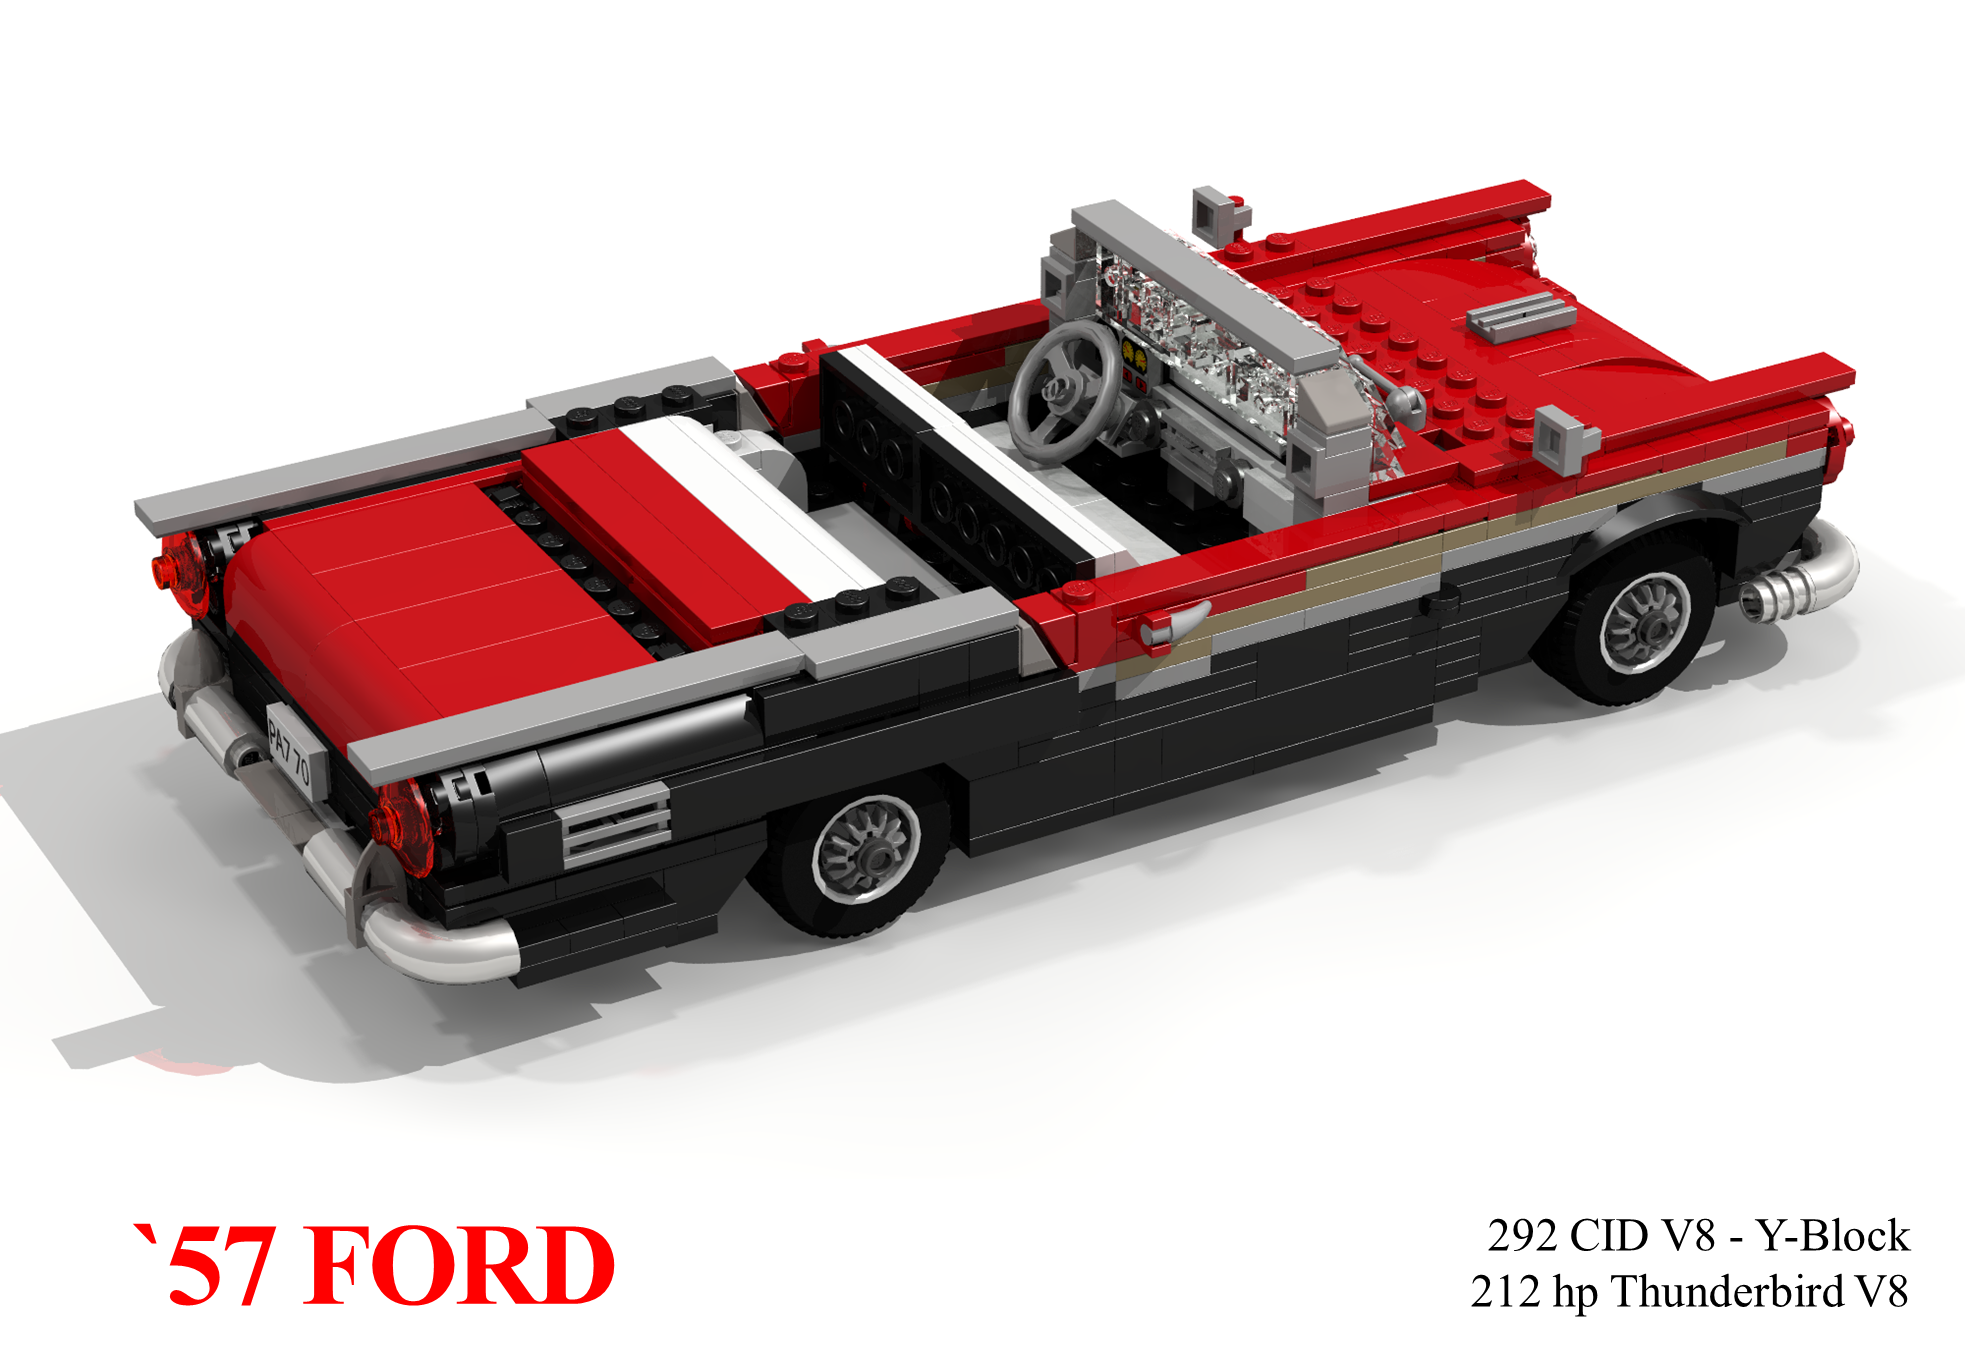 ford_1957_fairlane_convertible_05.png